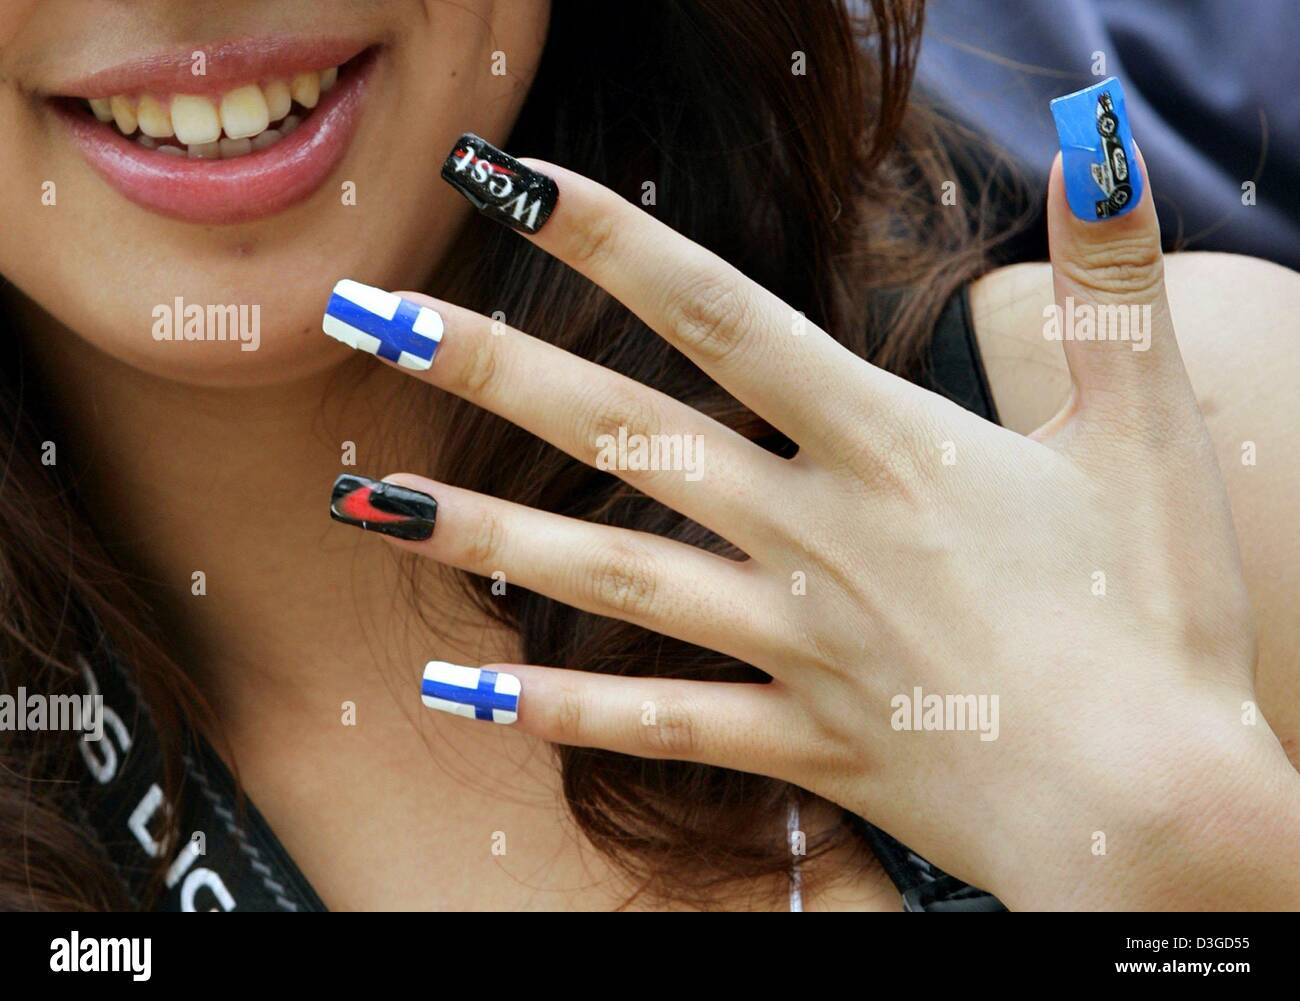 (dpa) - A Japanese fan of Finish formula one pilot Kimi Raeikkoenen shows her fingernails painted in the Finnish Stock Photo